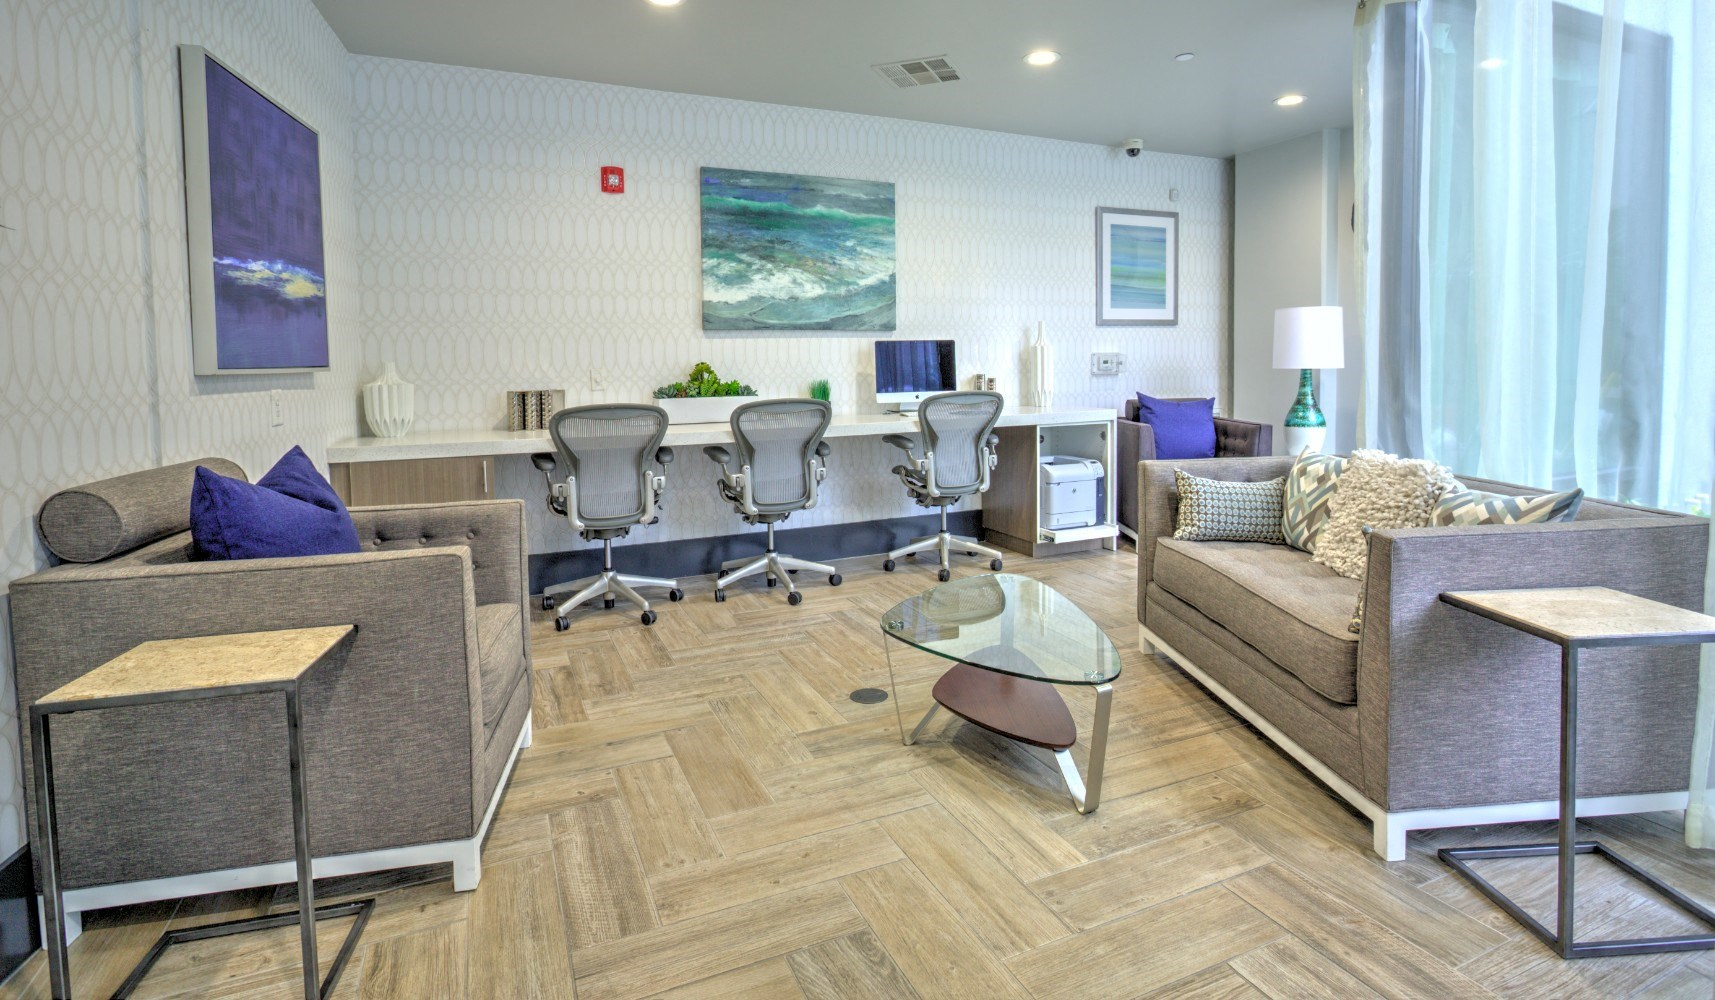 Work Space at Accent apartments, Playa Vista, 90066